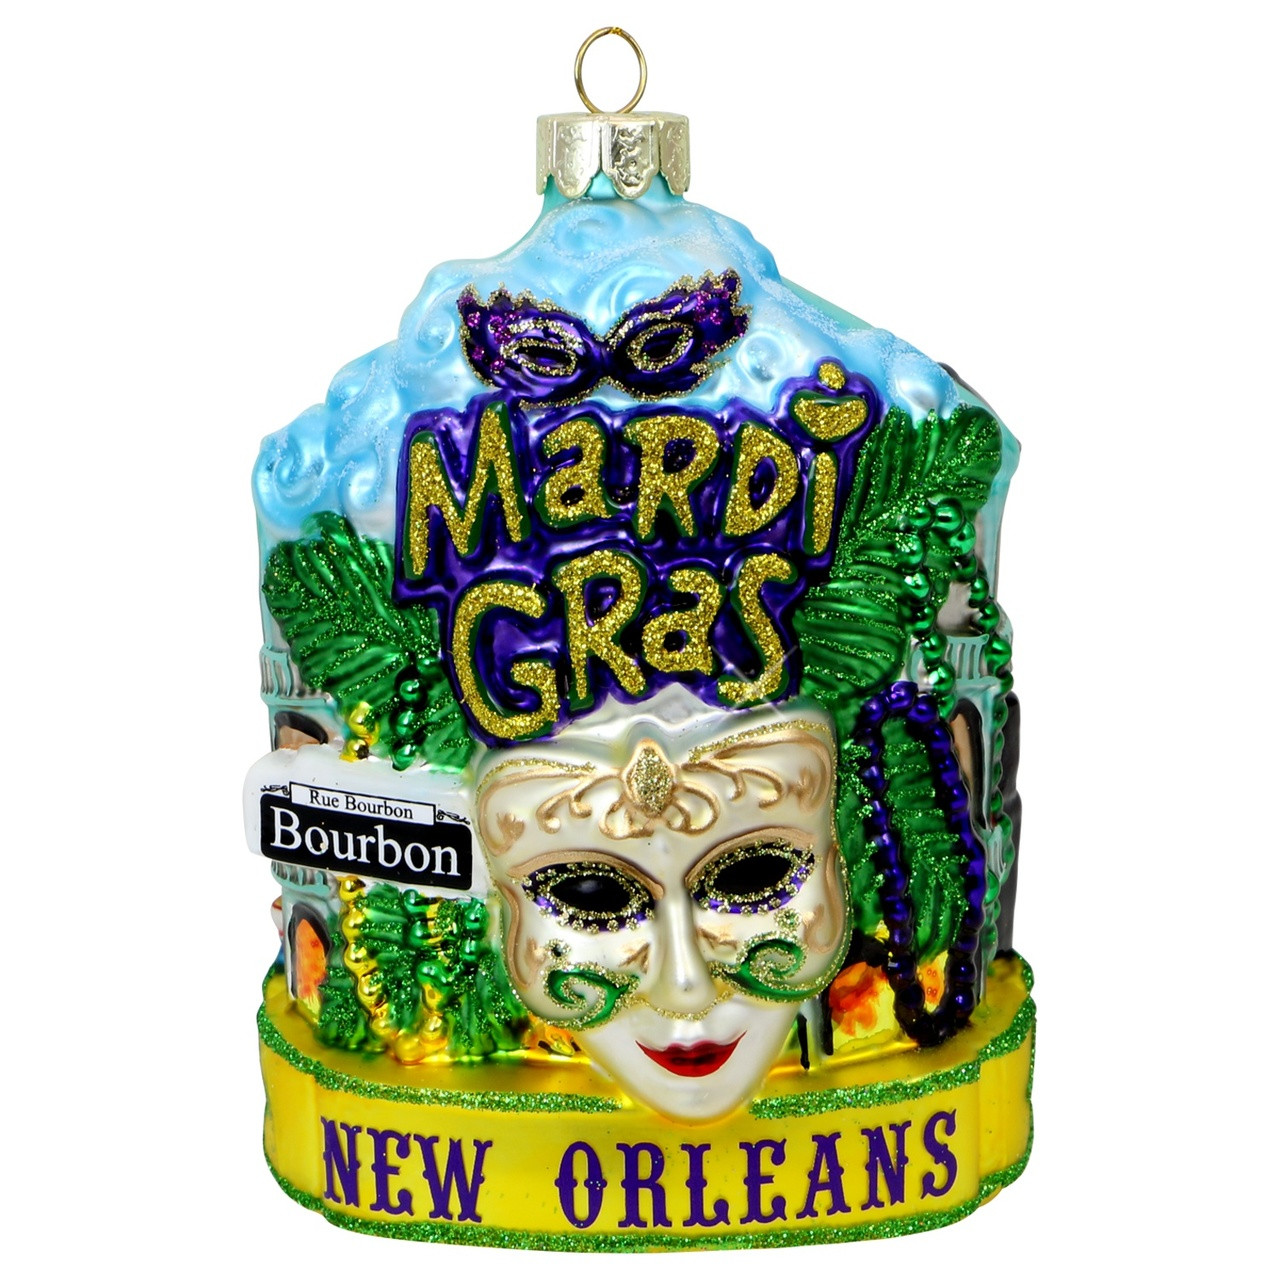 New Orleans Christmas Ornaments.New Orleans Mardi Gras Glass Christmas Ornament